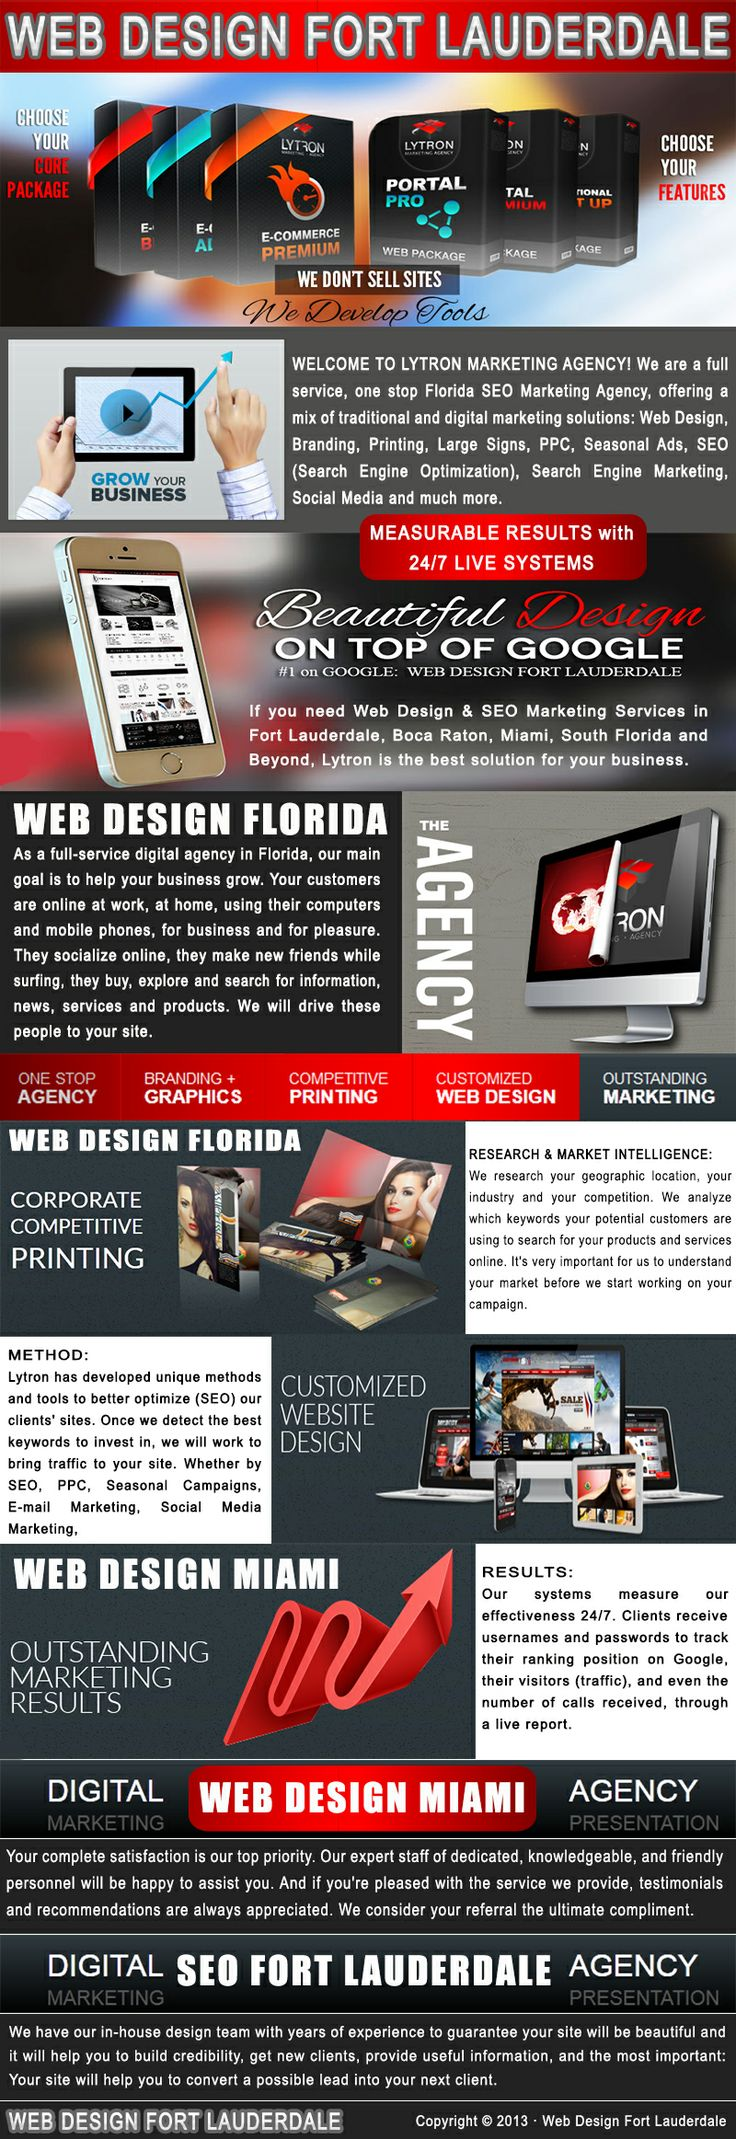 Visit our site http://fortlauderdale-webdesign.com/ for more information on Web Design Fort Lauderdale.Good web design is a collaborative process. Web Design Fort Lauderdale is the solution to a design problem that can be summed up in a series of constraint questions. Web design is a constantly evolving dimension of marketing and it is a field that is crowded and competitive.